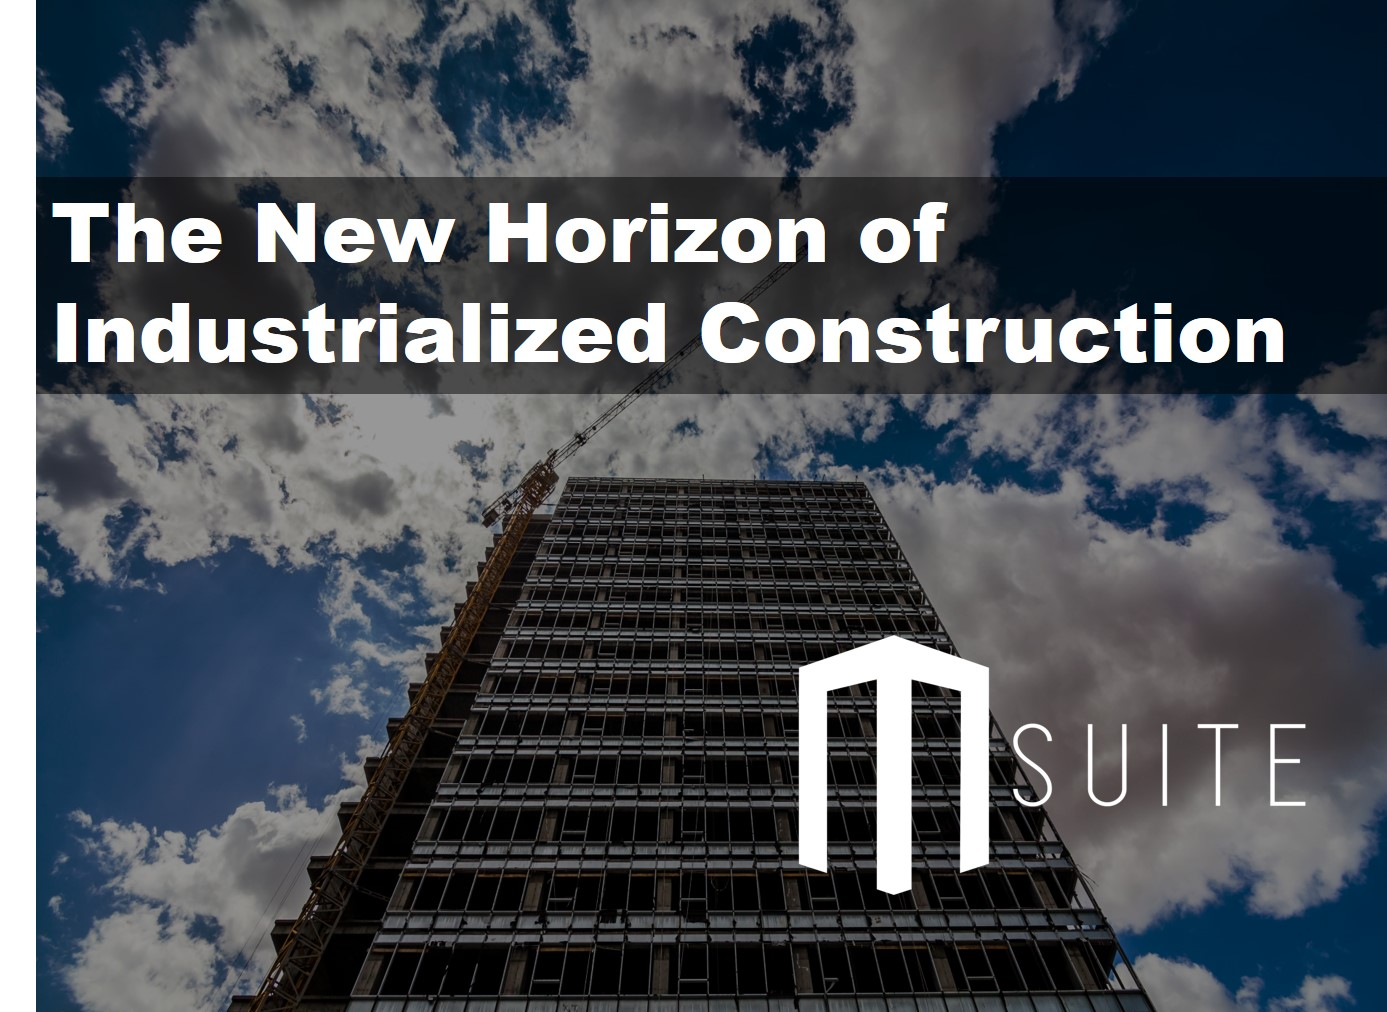 The New Horizon of Industrialized Construction